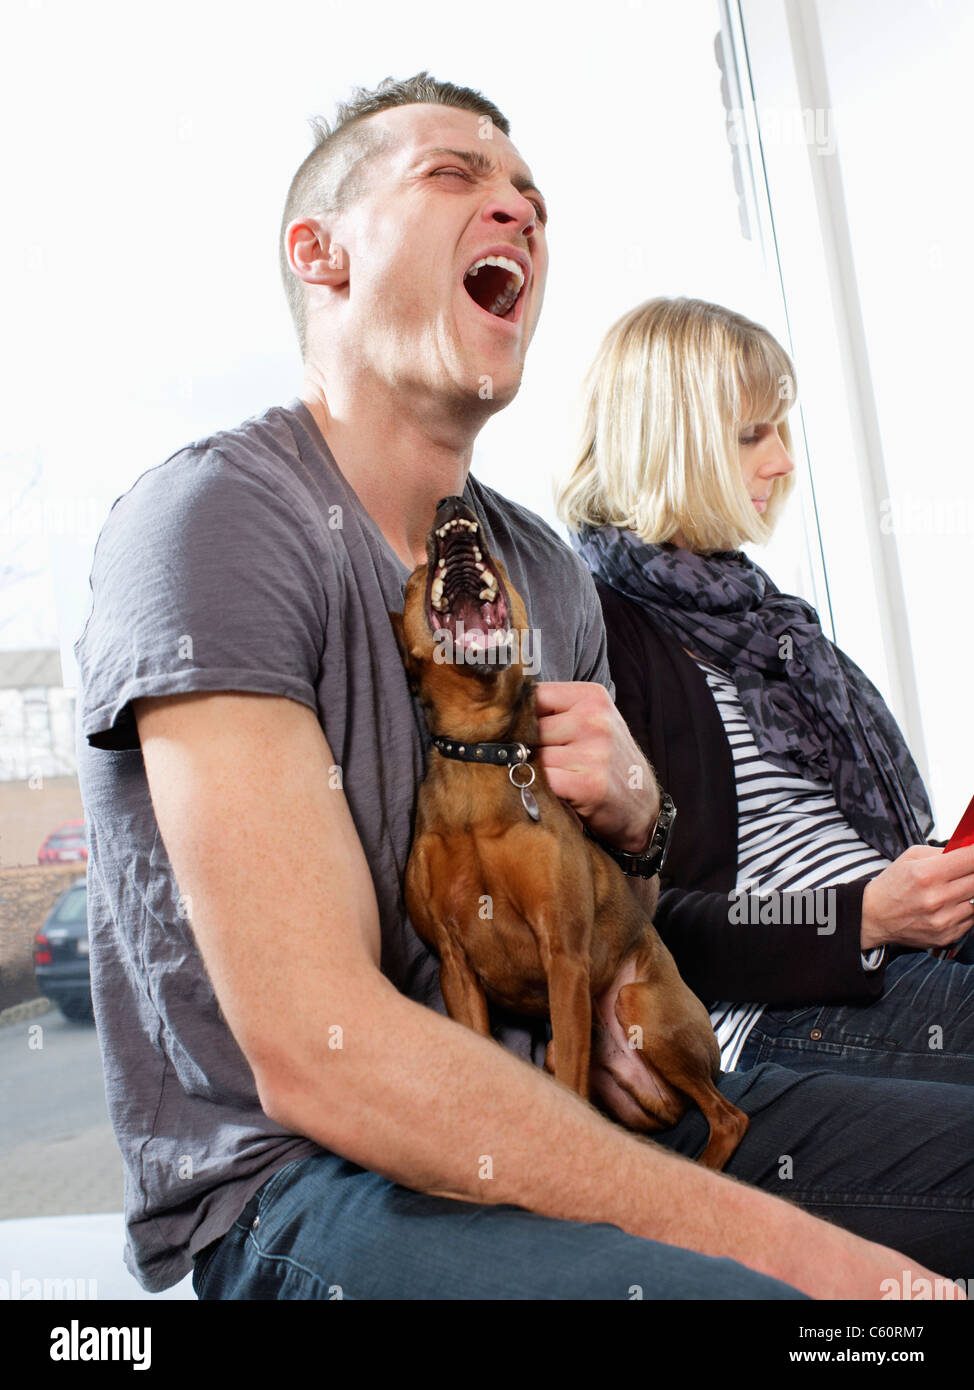 Man and dog howling together - Stock Image